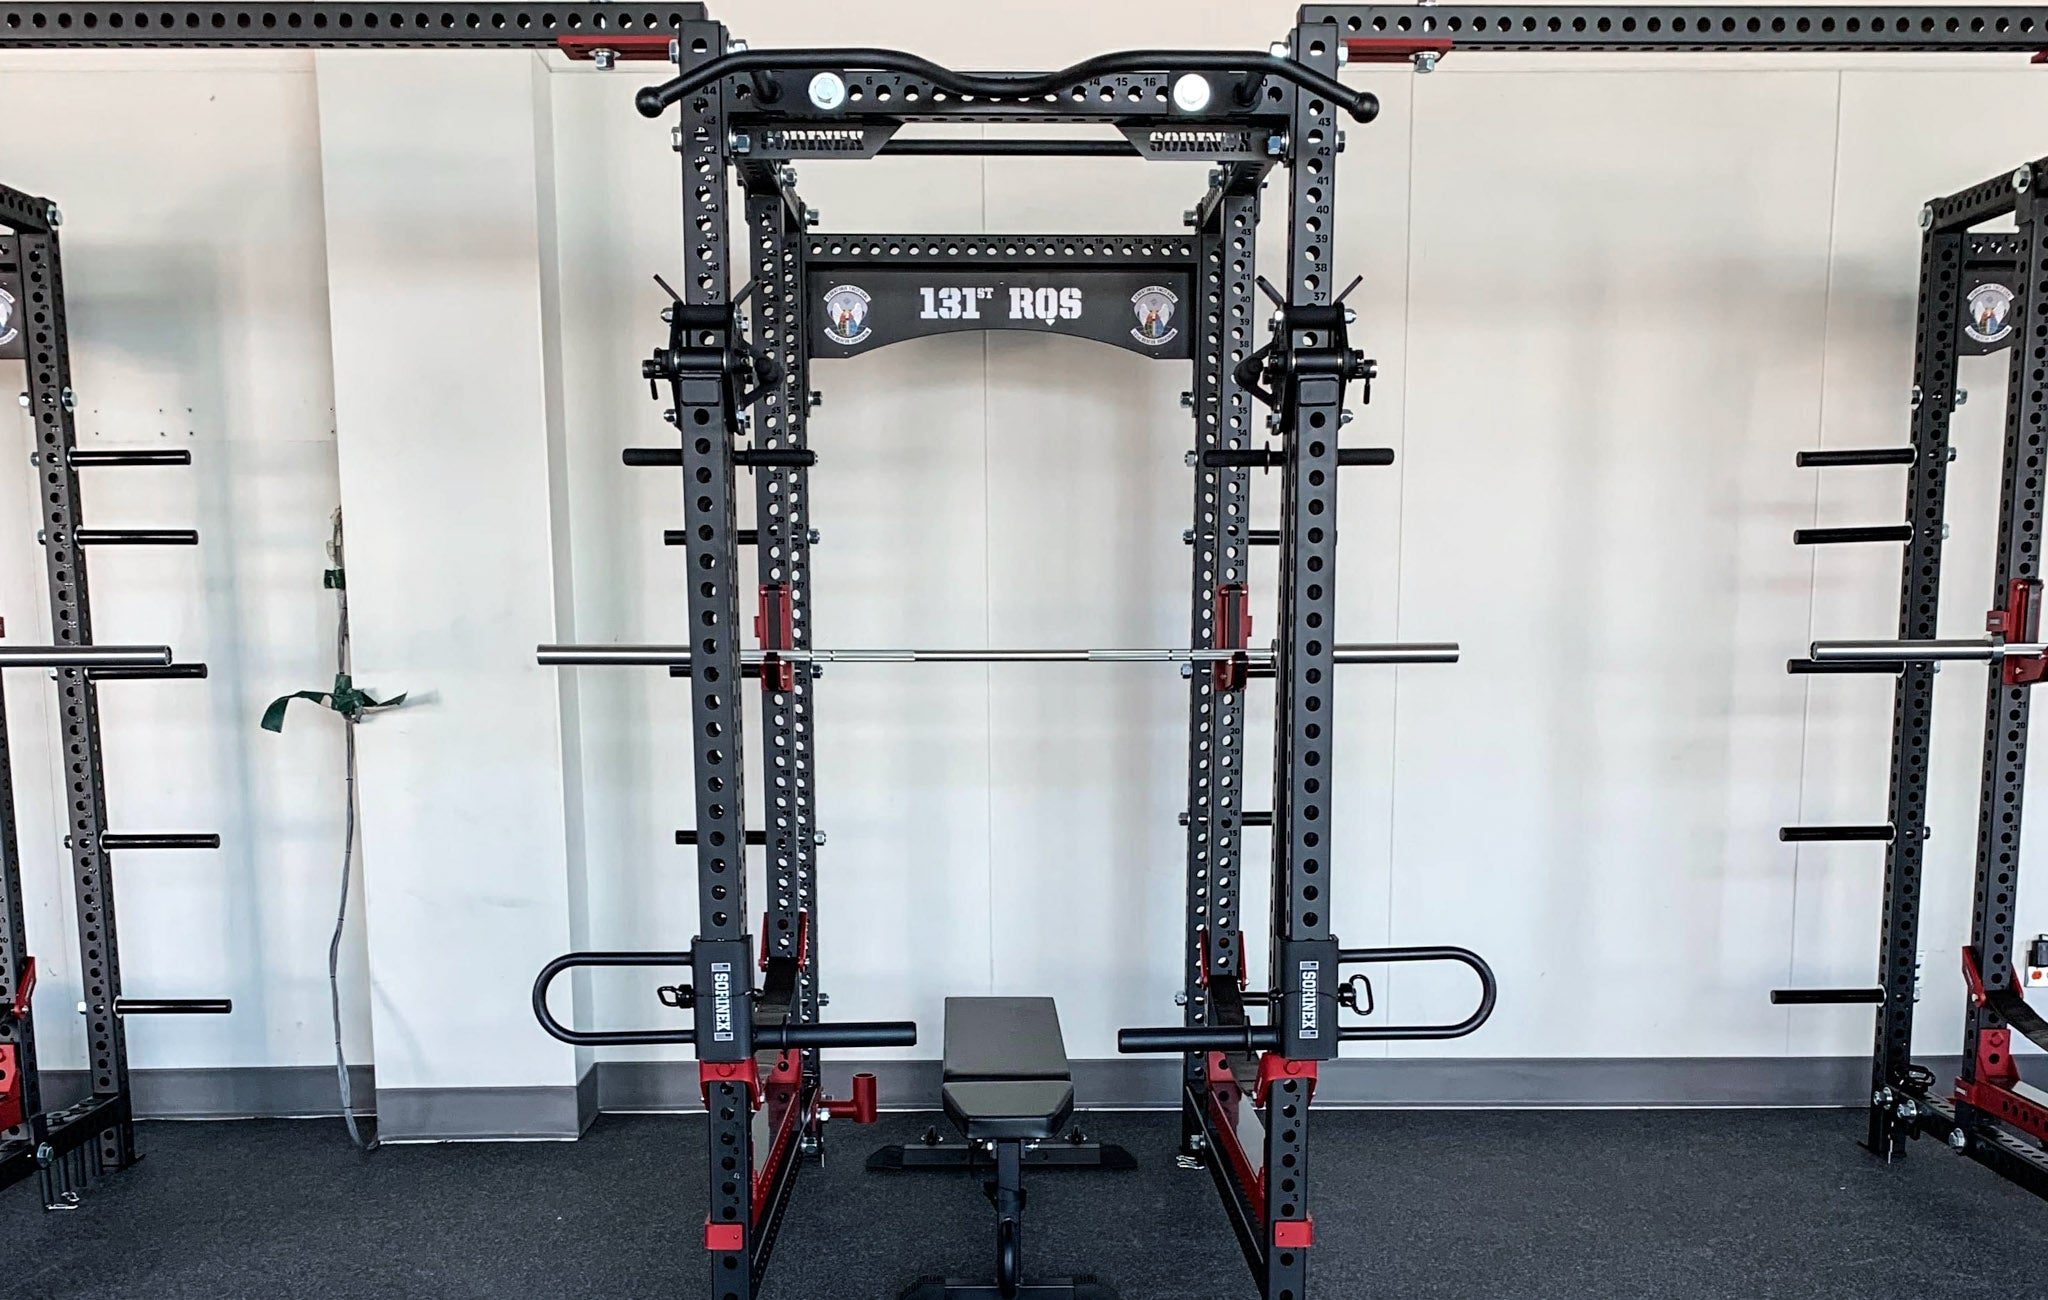 131 RQS weight room